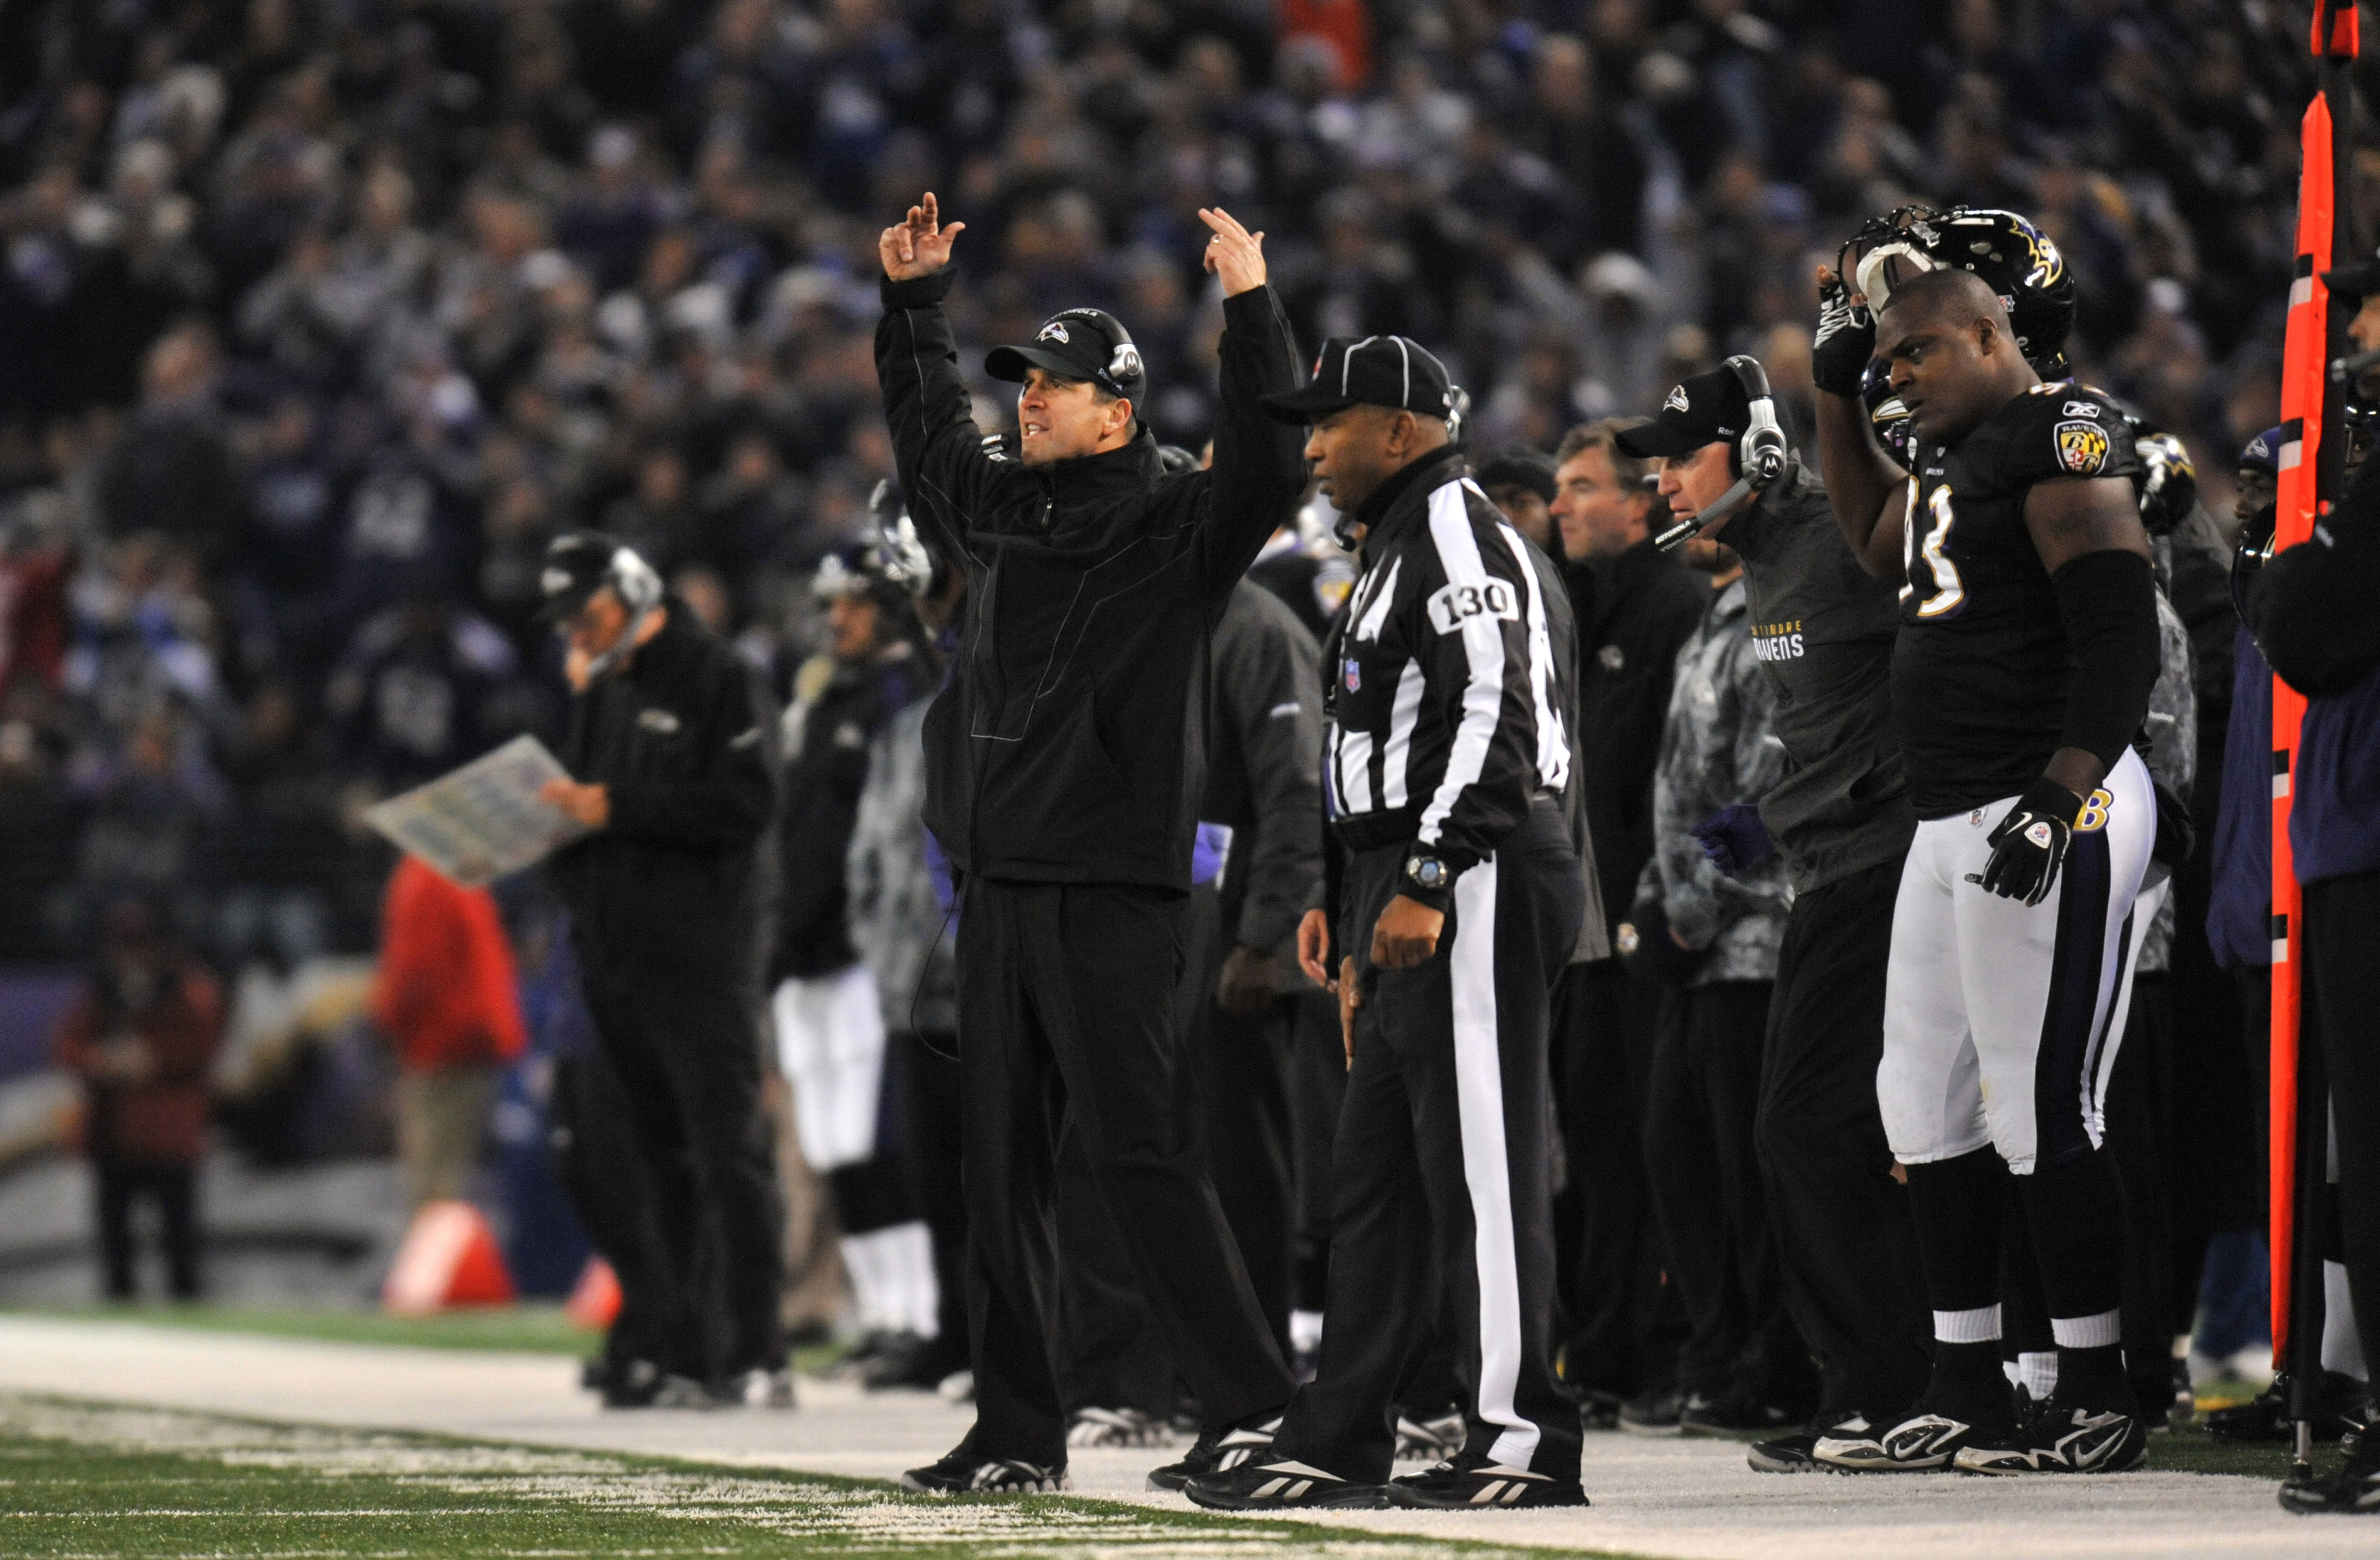 The Ravens coaching staff was prepared and called a good game